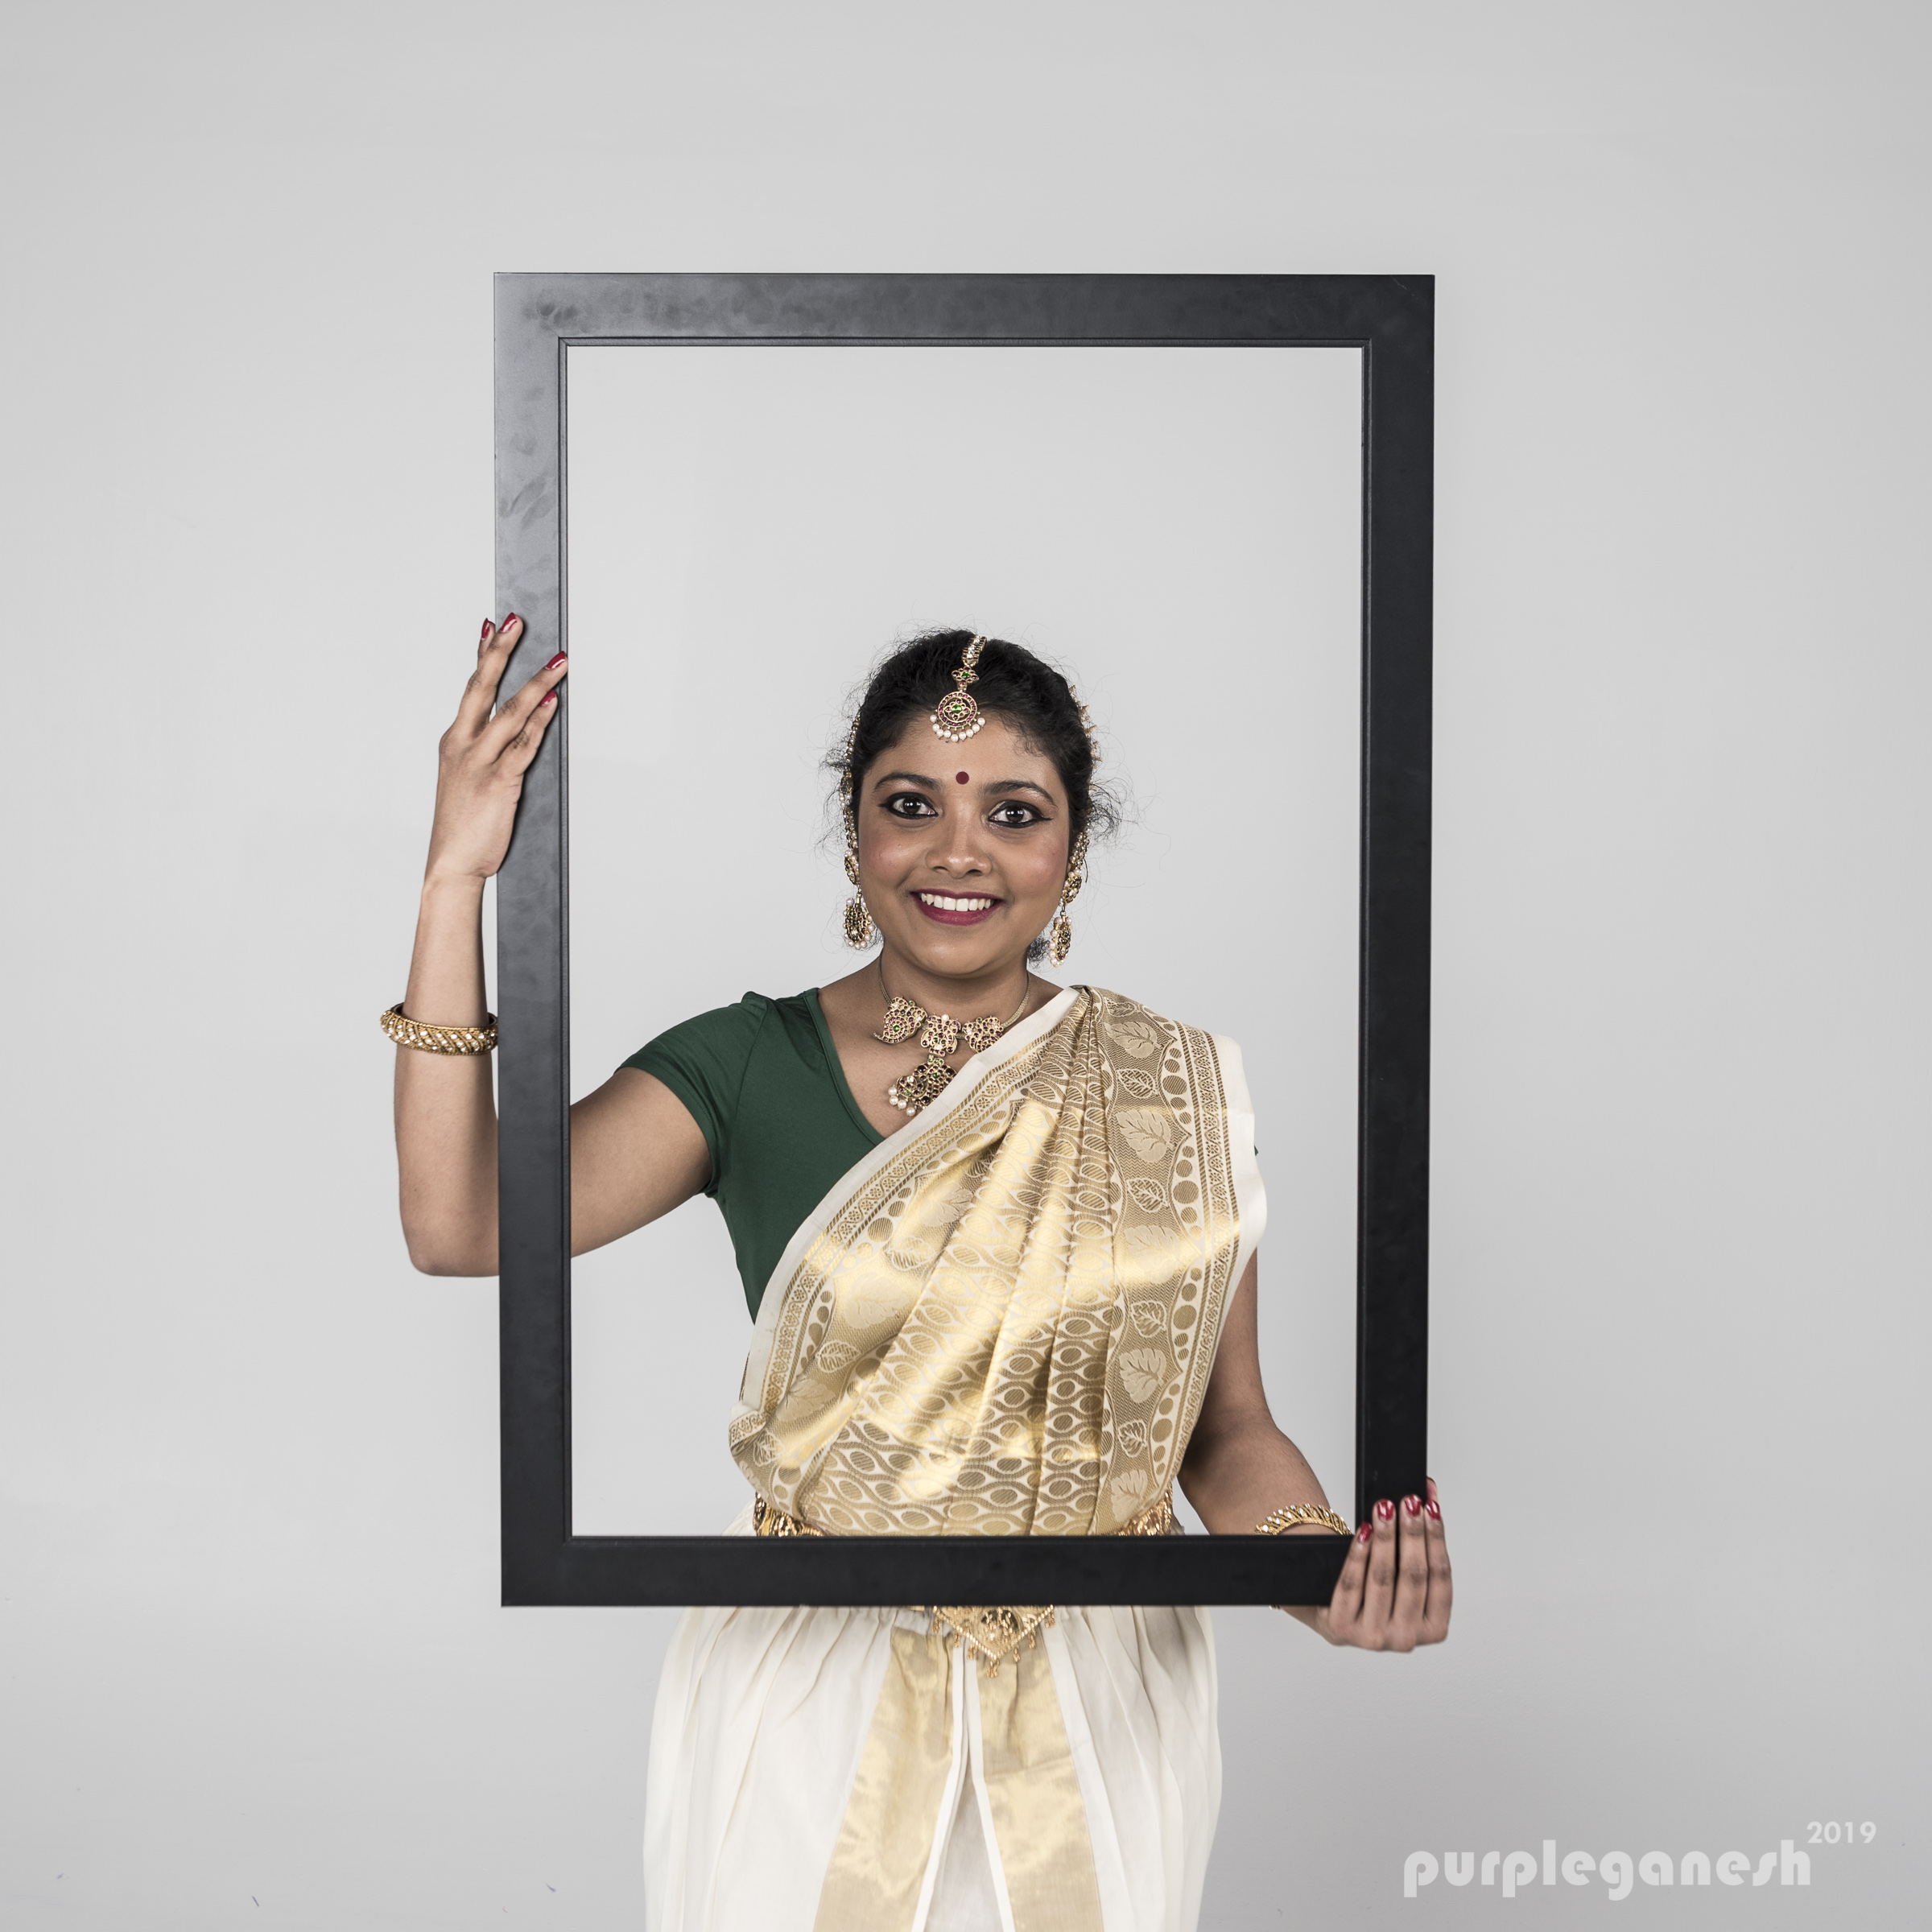 Kavya Prasad - started learning Bharatanatyam at the age of 7 under the tutelage of Smt. Kamakshi Jayaraman at Shivanjali School of Dance and later under the guidance of Smt. Lavanya Sankar at Abhayasa Academy, Coimbatore. She has performed in various distinguished forums such as the Namami Gange Anthem, a Government of India Project. She continues to actively perform in India.